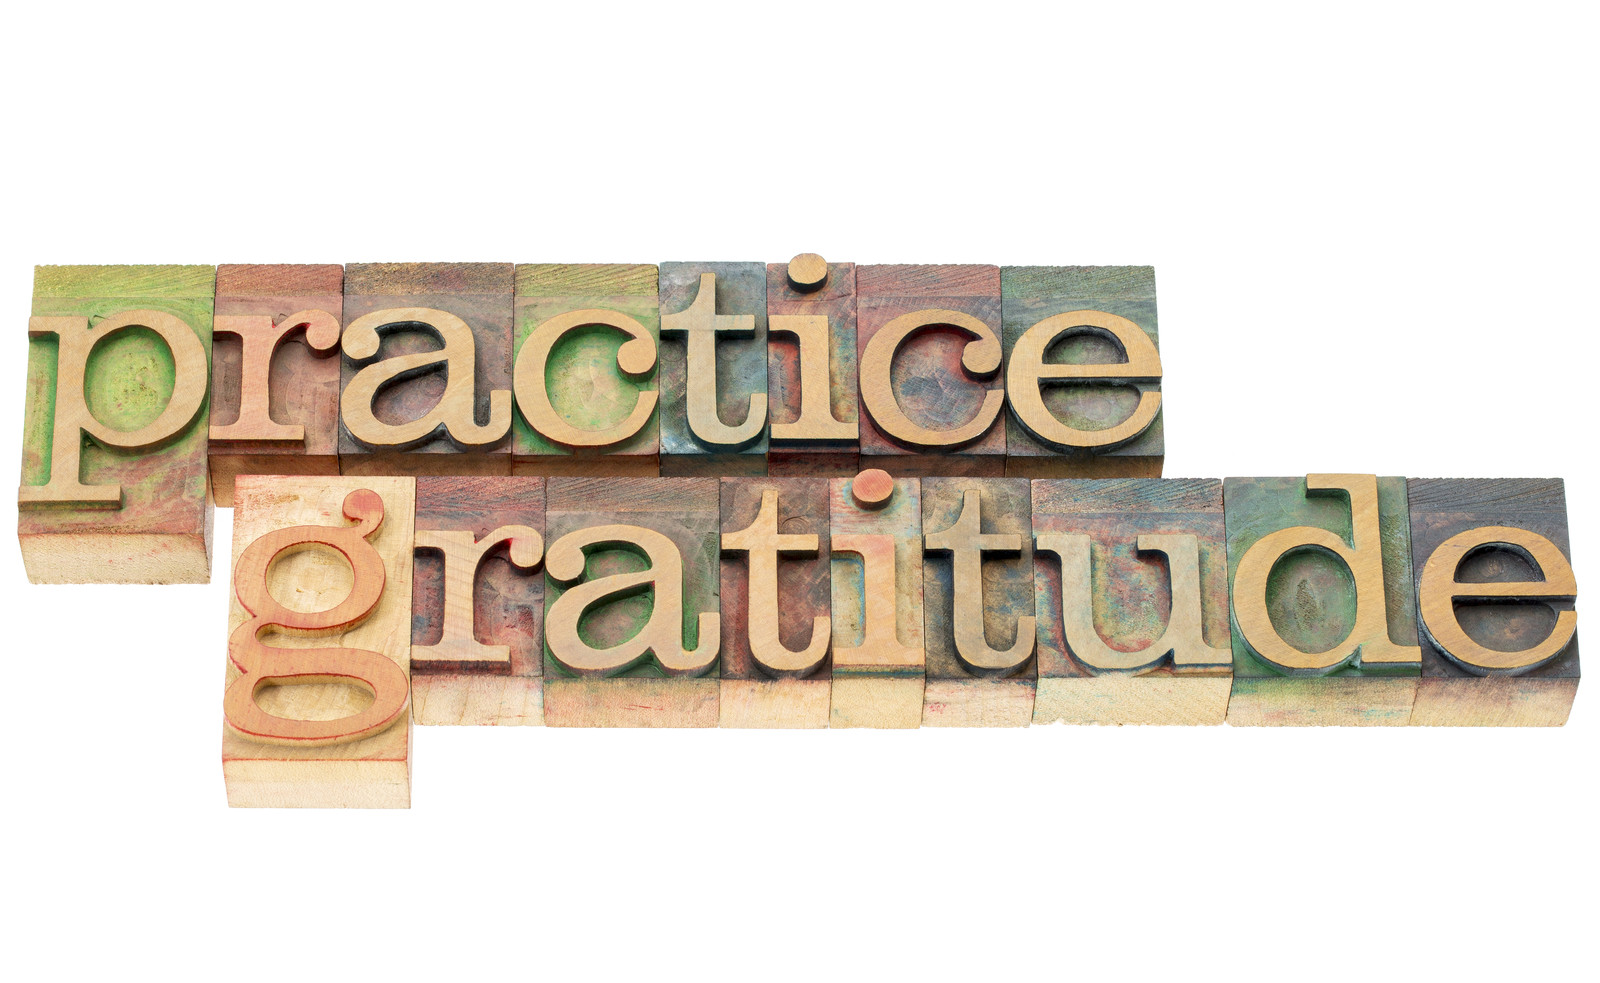 essay on attitude of gratitude towards parents These are, in the language of his time, the sovereign, the teacher and the parent  our gratitude toward our parents is elemental, since it is through them that our.